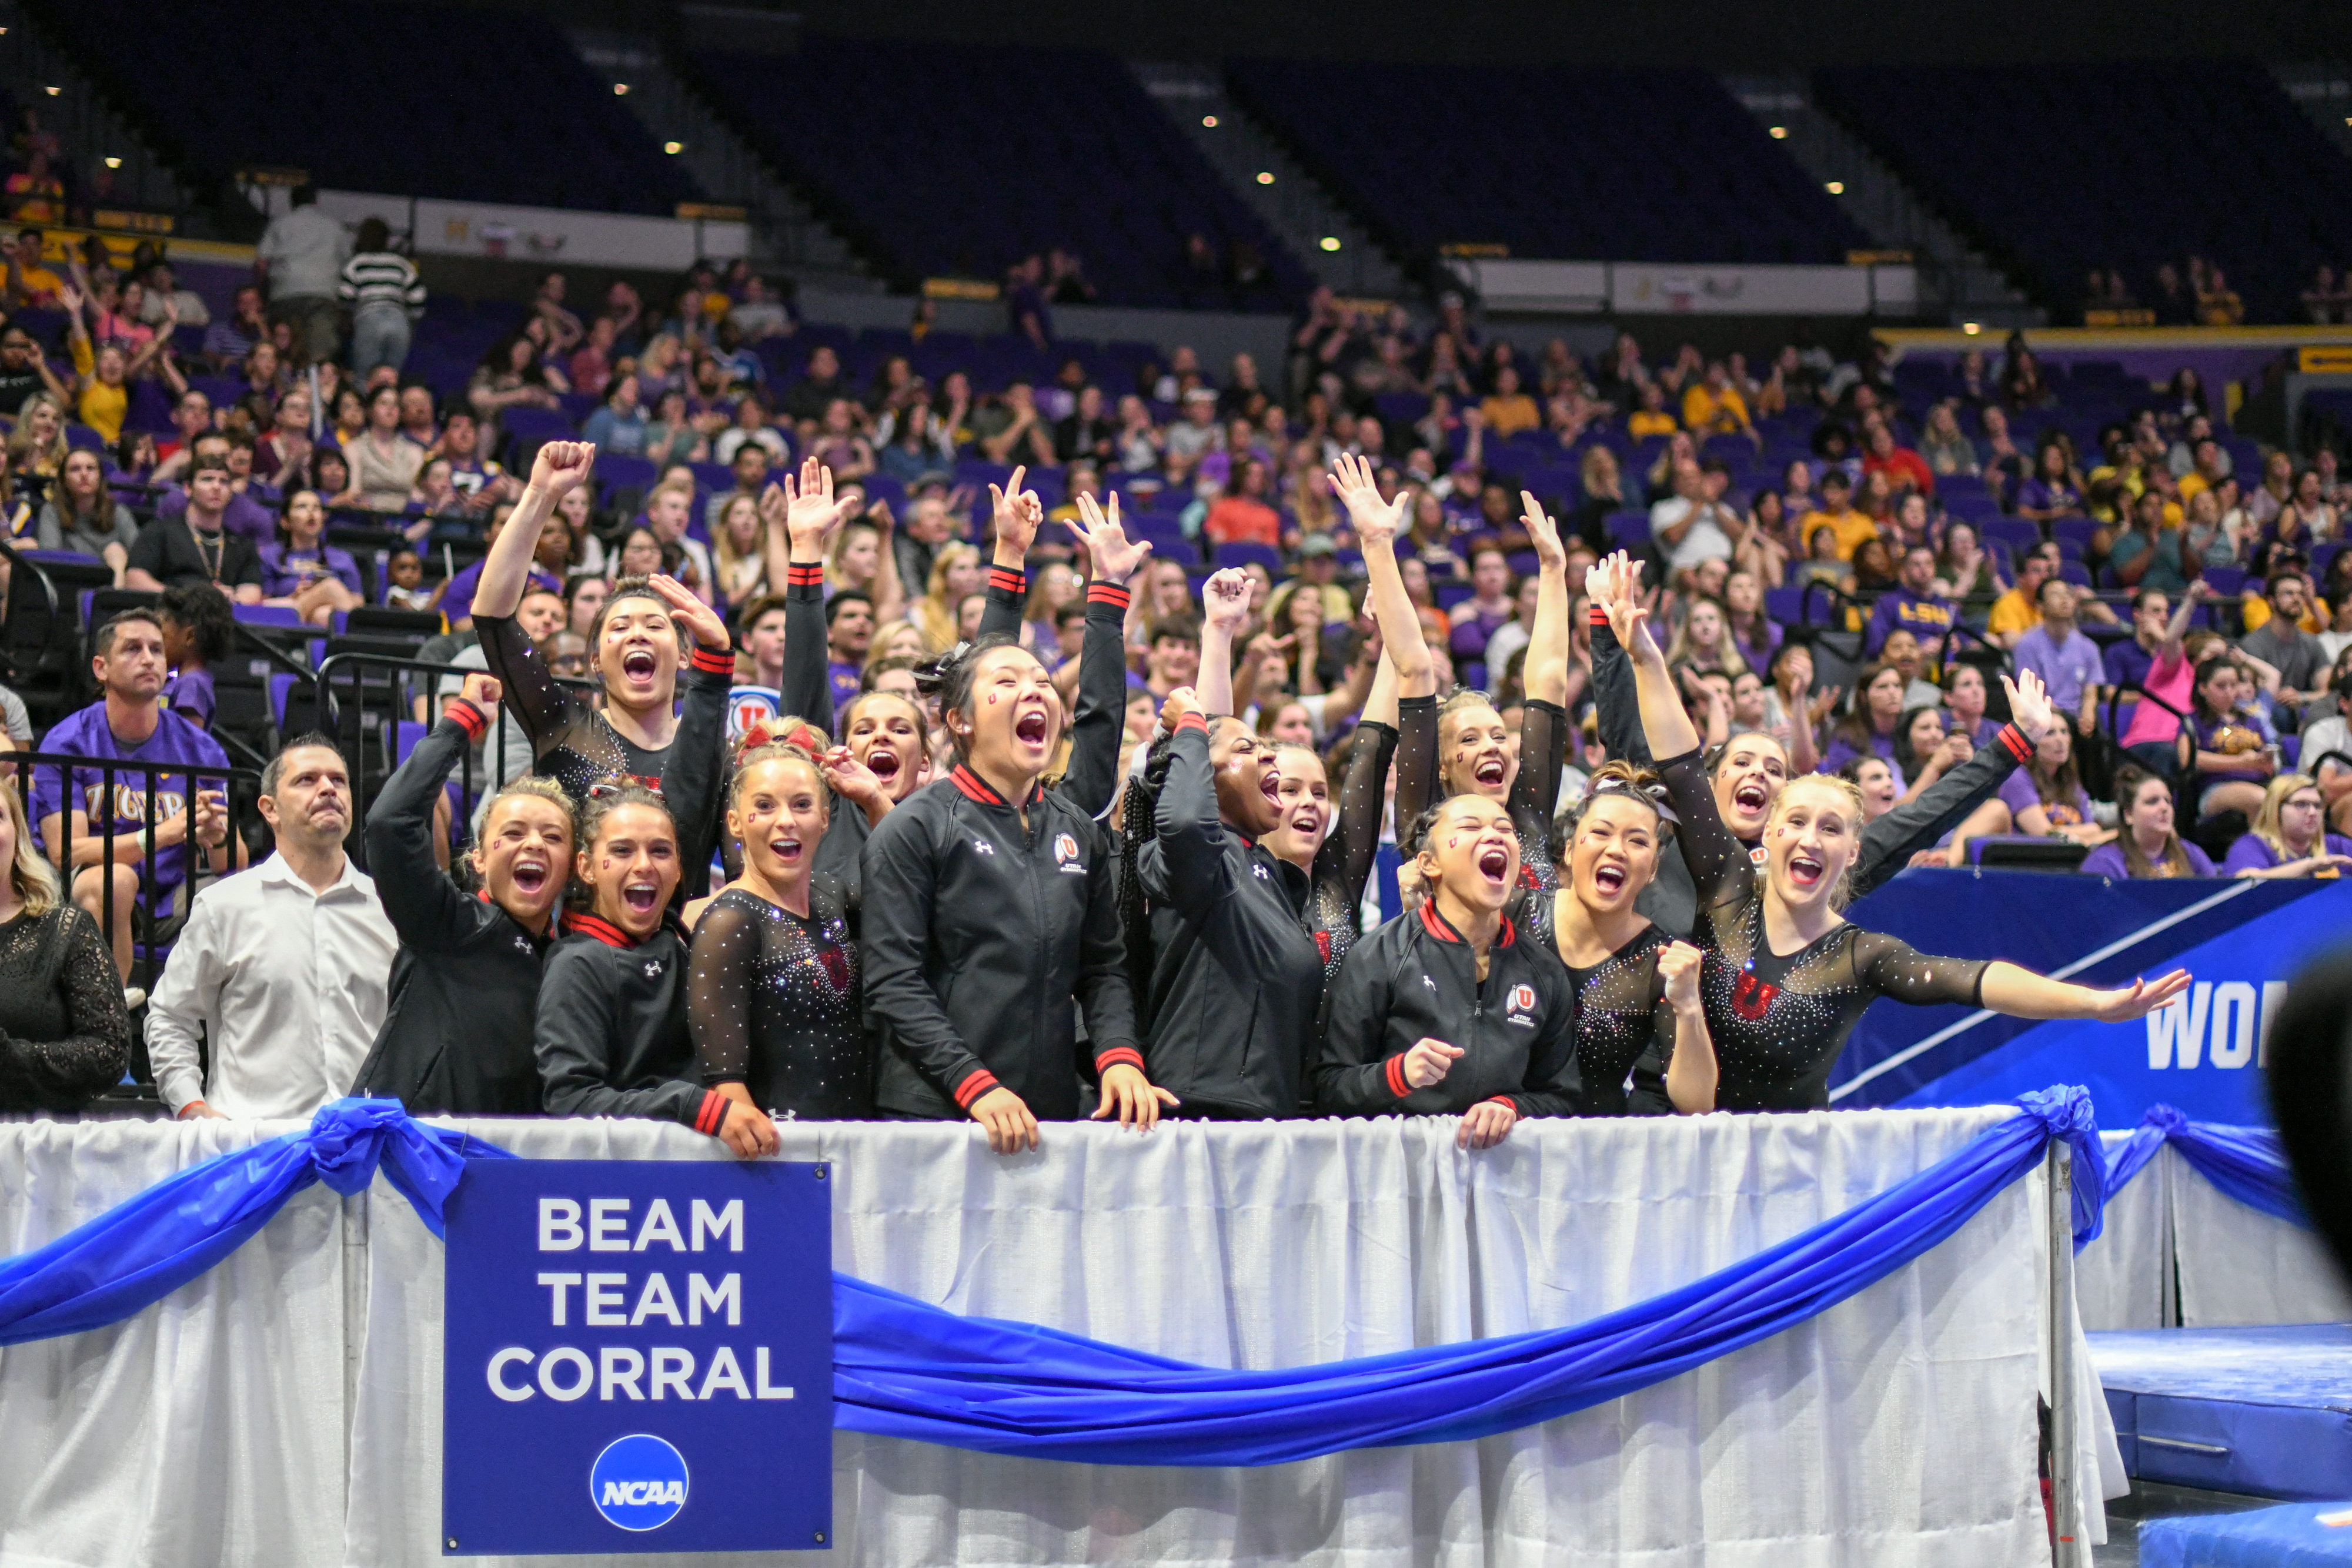 The University of Utah gymnastics team celebrates their second-place finish at the NCAA Baton Rouge Regional final in Baton Rouge, La., on Saturday, April 6, 2019. The top-two finish secured Utah its 44th consecutive berth in the national championships.